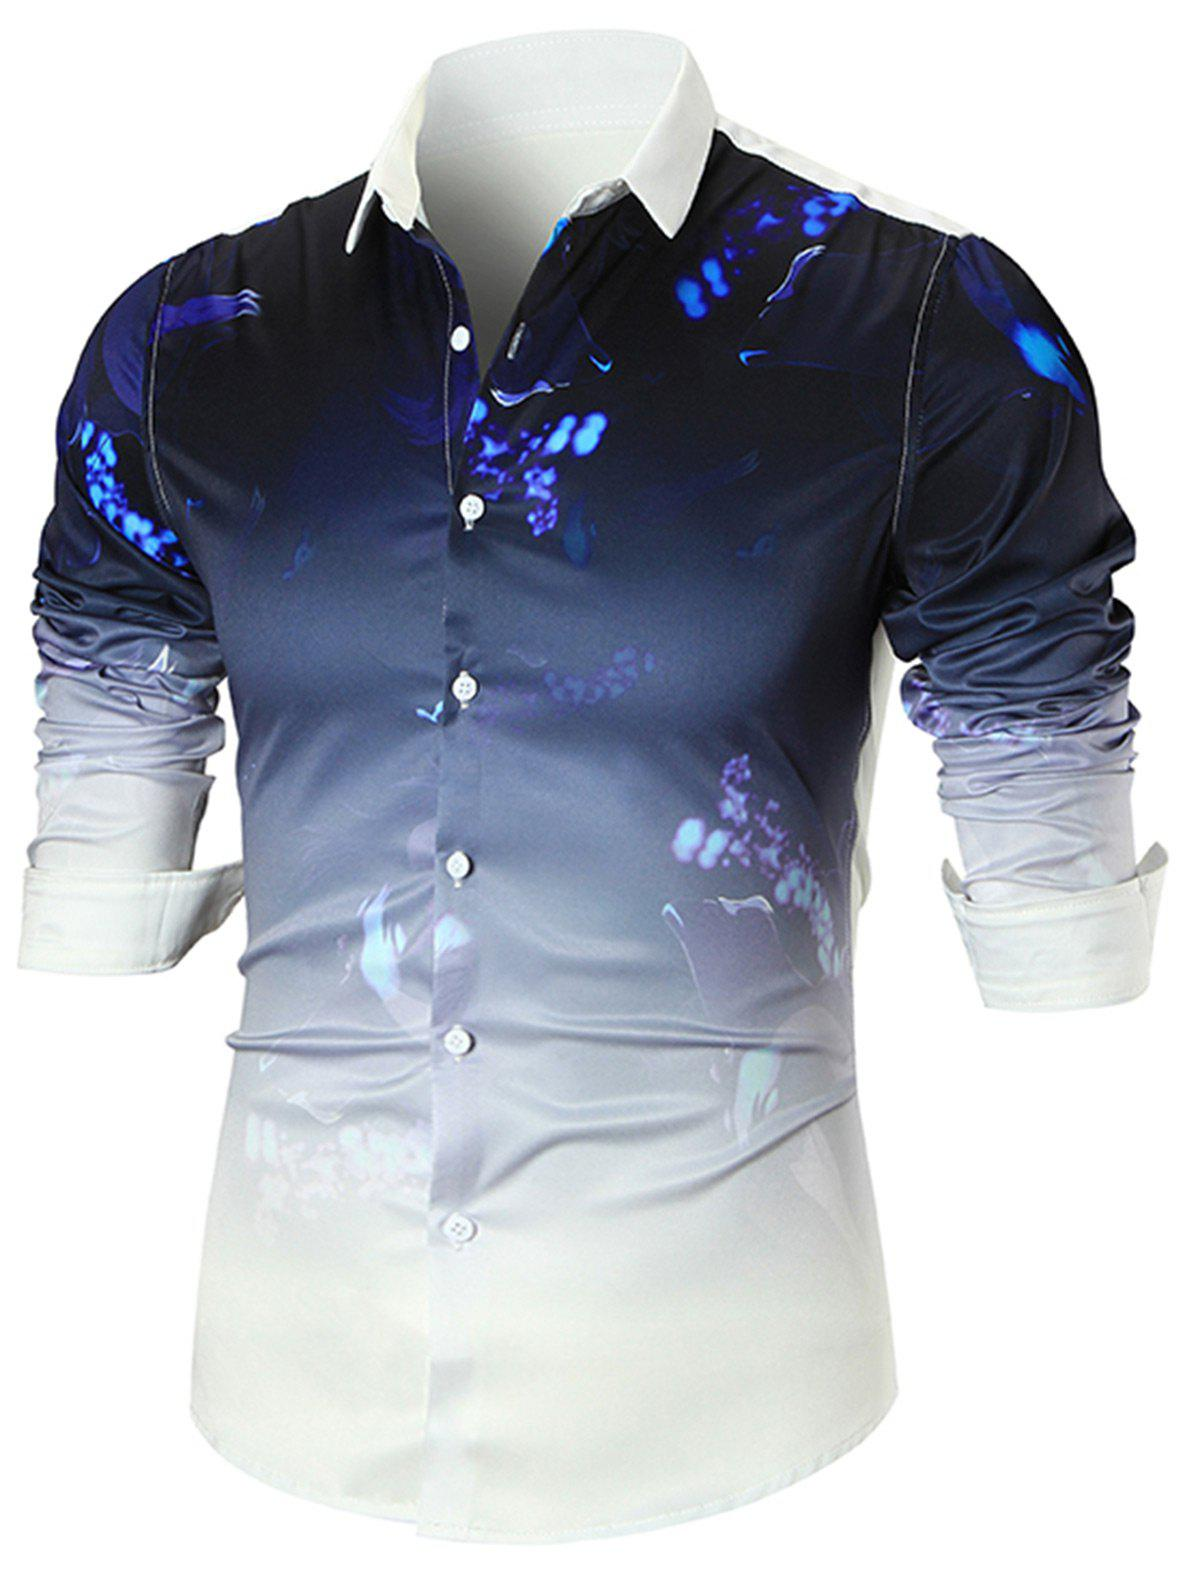 Splatter Paint Dip-dye Long Sleeve ShirtMEN<br><br>Size: L; Color: WHITE; Shirts Type: Casual Shirts; Material: Polyester; Sleeve Length: Full; Collar: Turn-down Collar; Pattern Type: Print; Weight: 0.3100kg; Package Contents: 1 x Shirt;